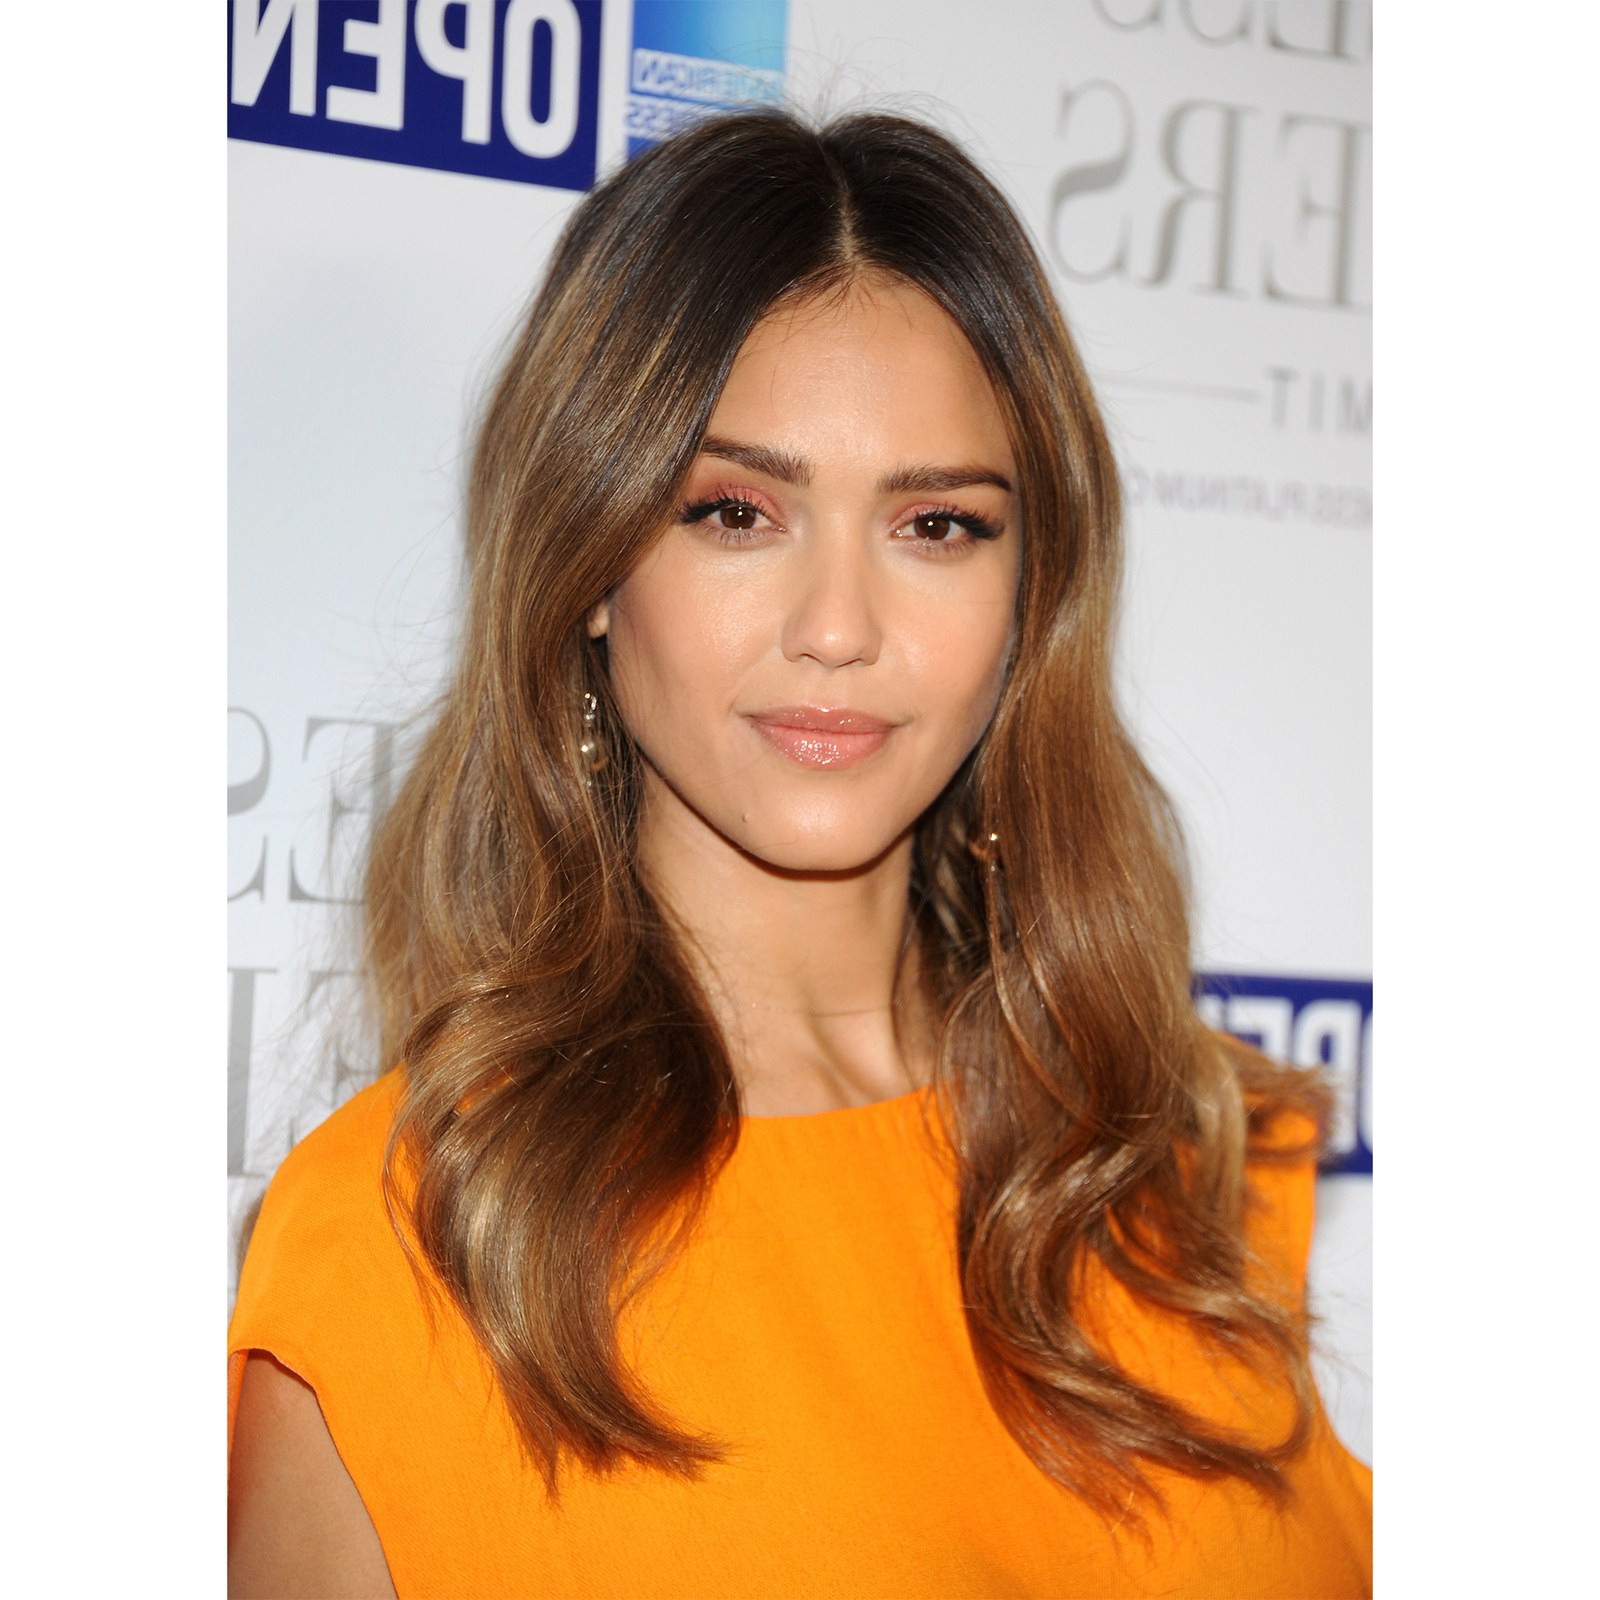 The 10 Most Flattering Haircuts For Oval Faces – Allure With Short Haircuts For Oval Faces (View 8 of 25)